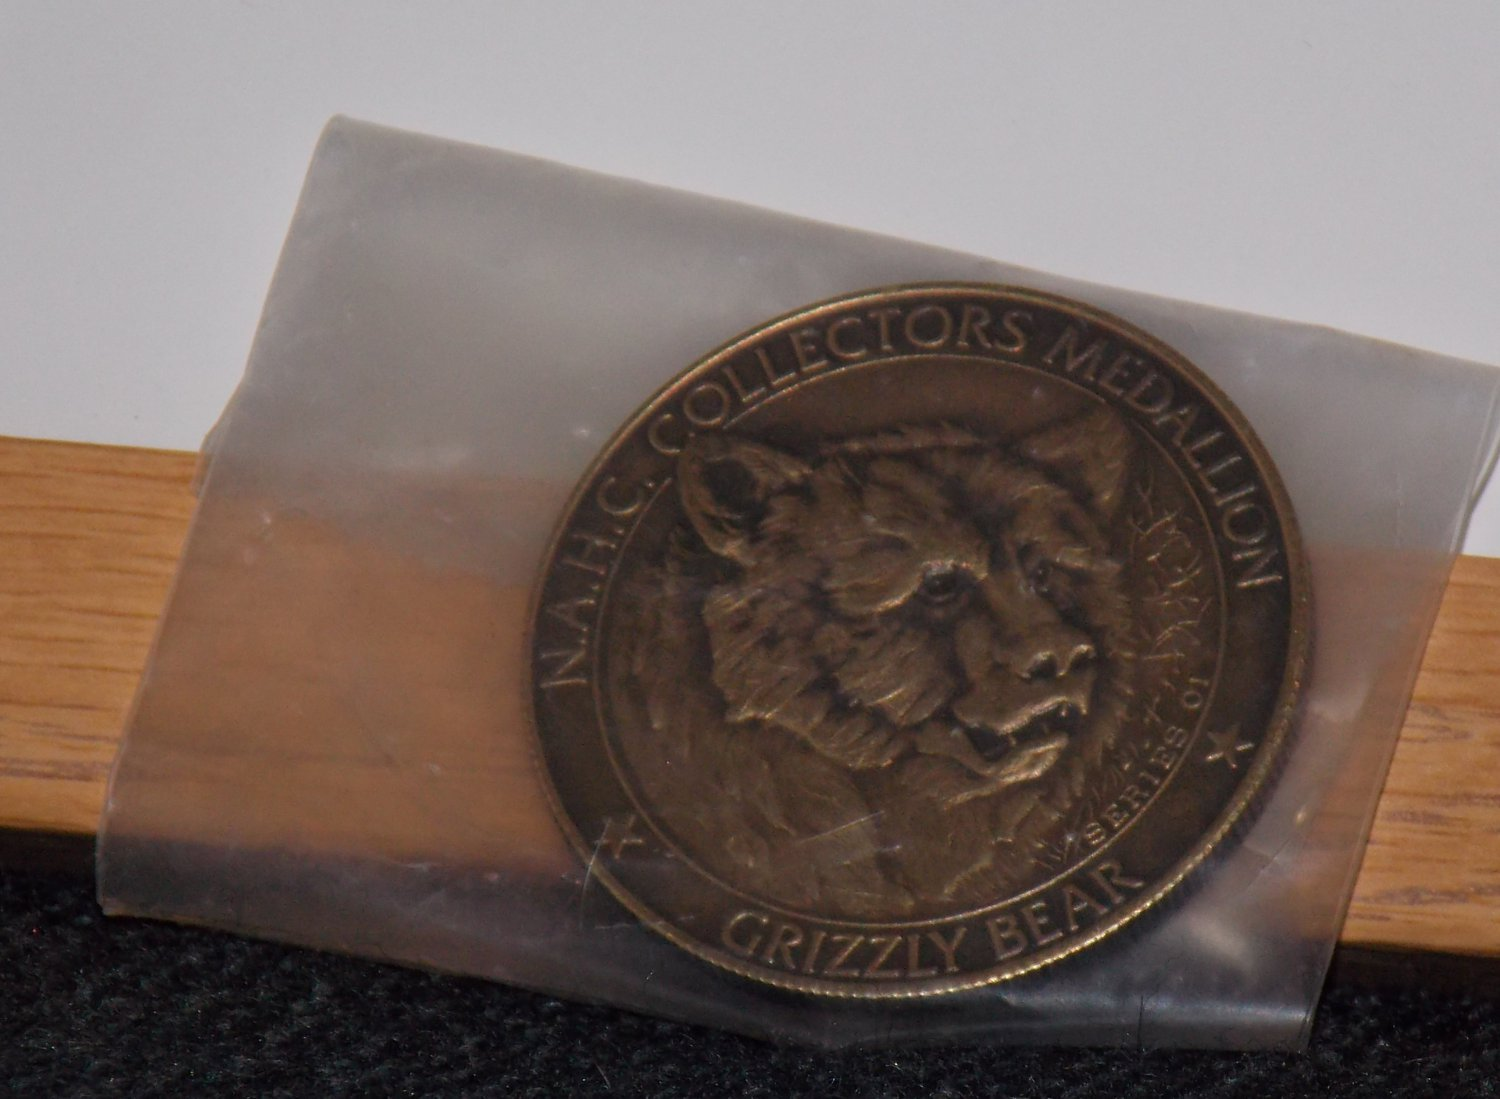 North American Hunting Club Collector Medallion - Grizzly Bear